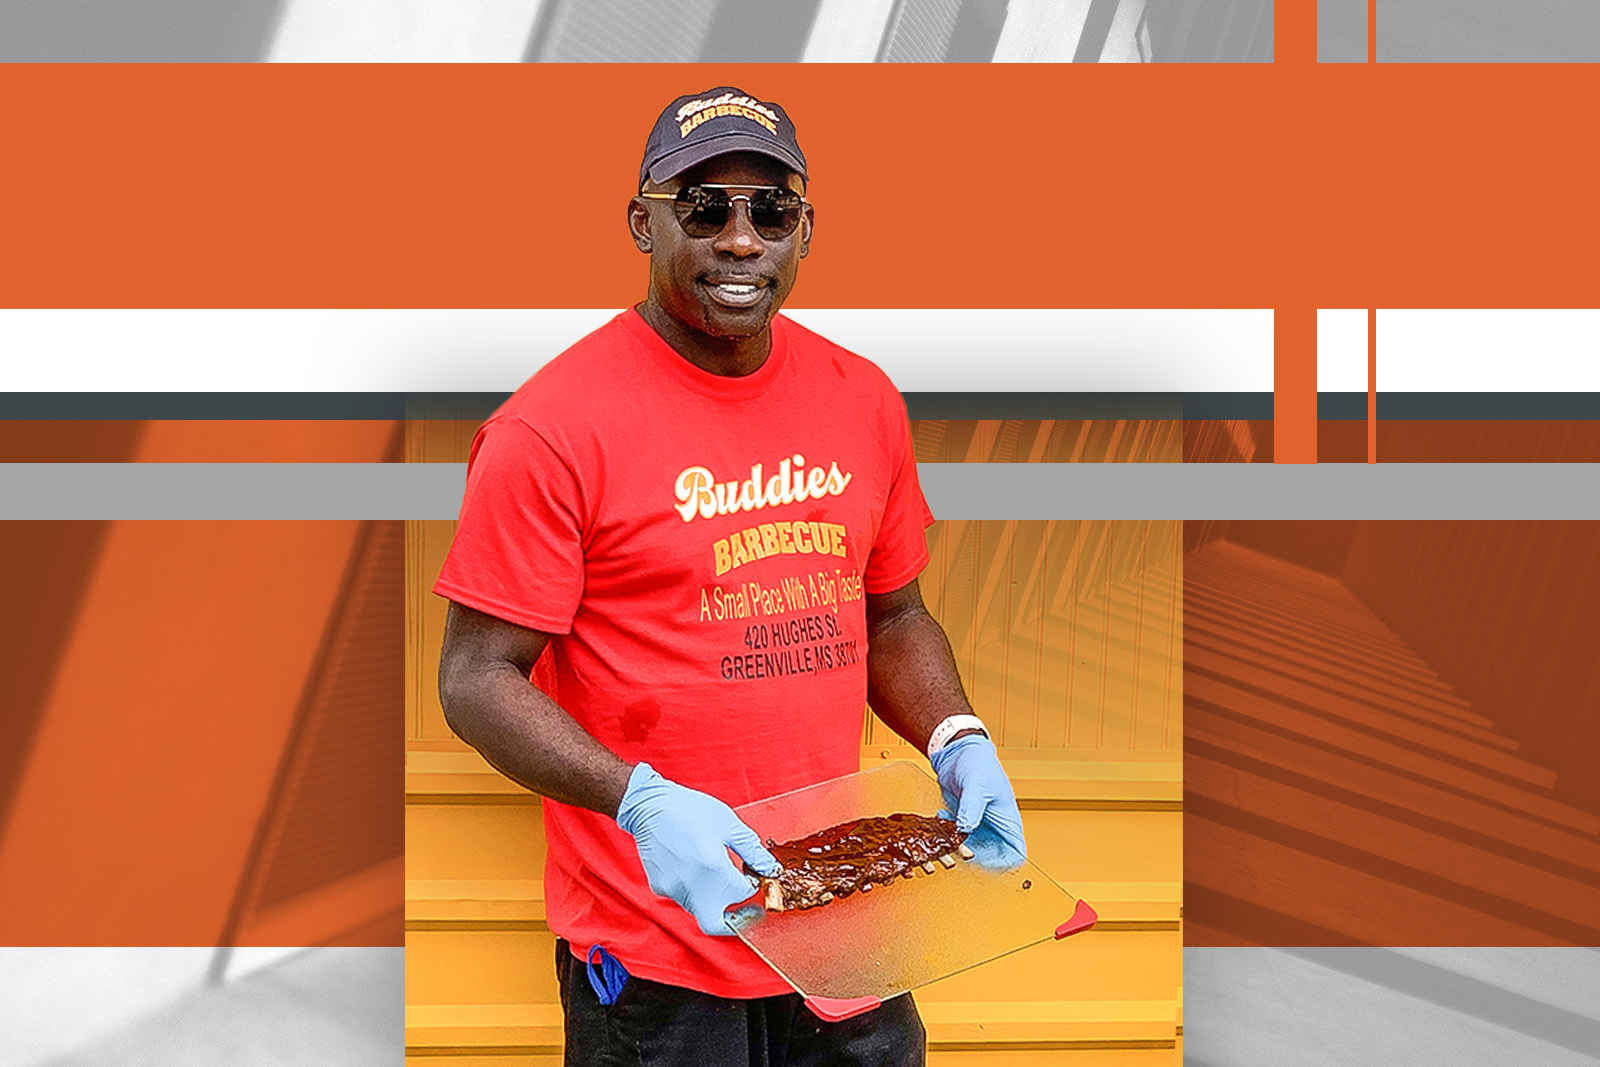 Lemore King will open his barbecue restaurant, Buddies Barbecue, later this year.